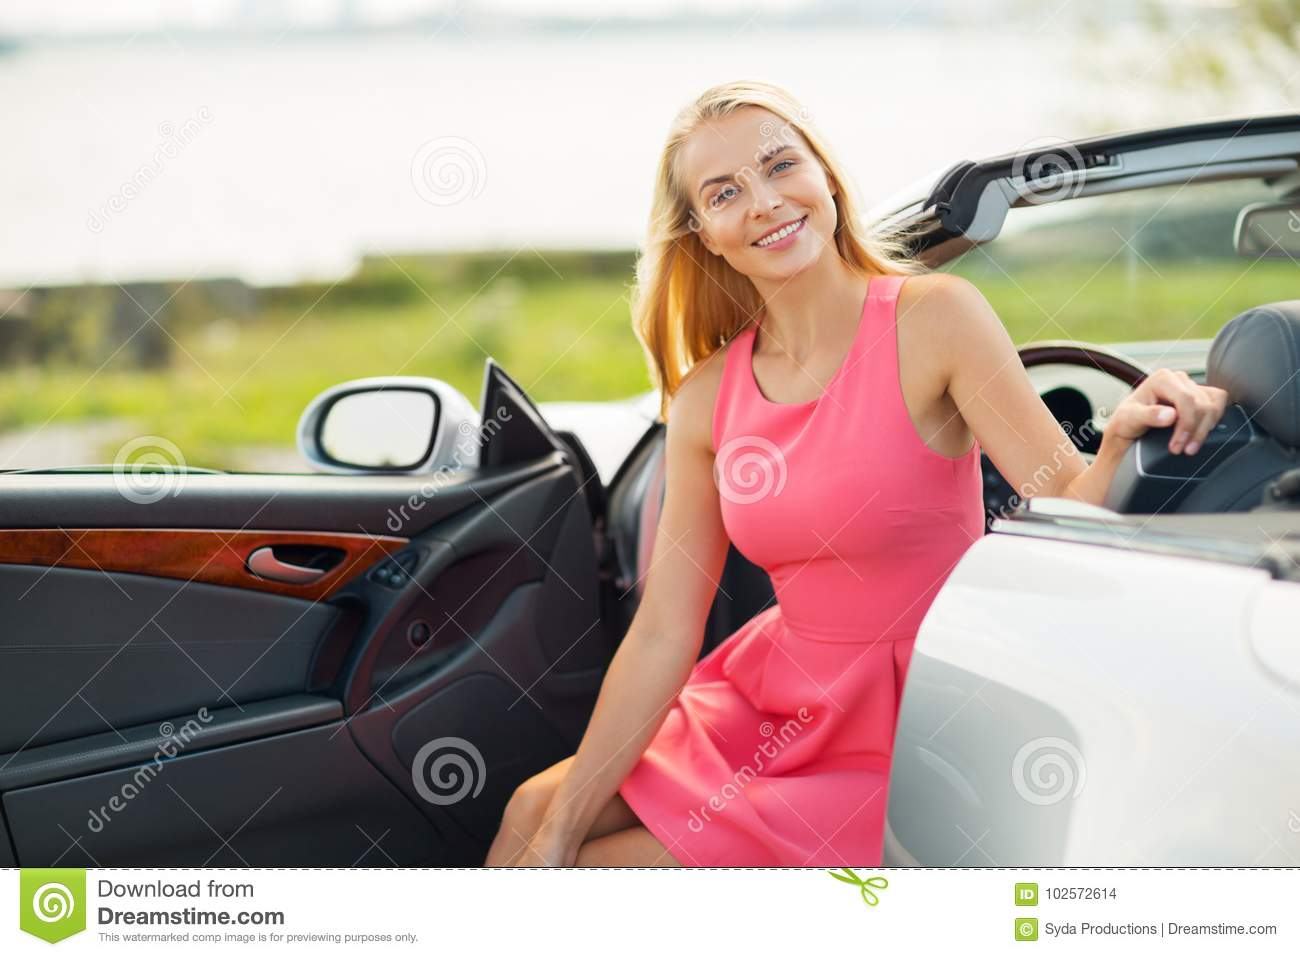 908bc5445 Happy Young Woman Porisng In Convertible Car Stock Photo - Image of ...